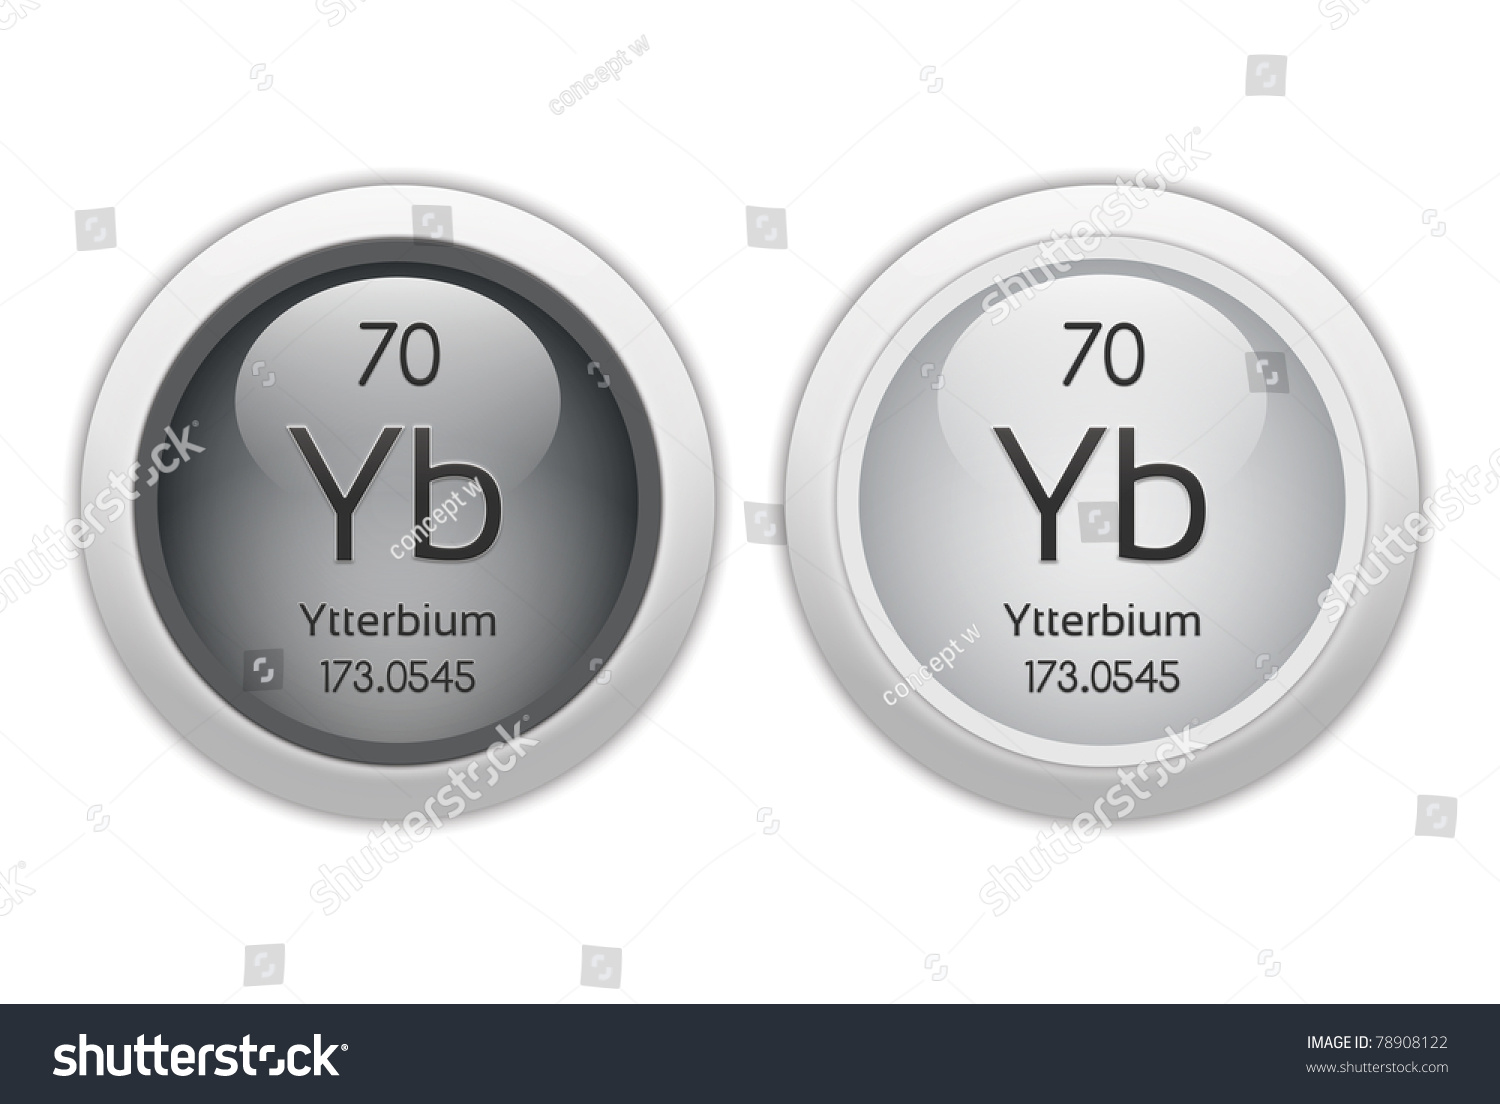 Ytterbium Two Web Buttons Chemical Element Stock Illustration